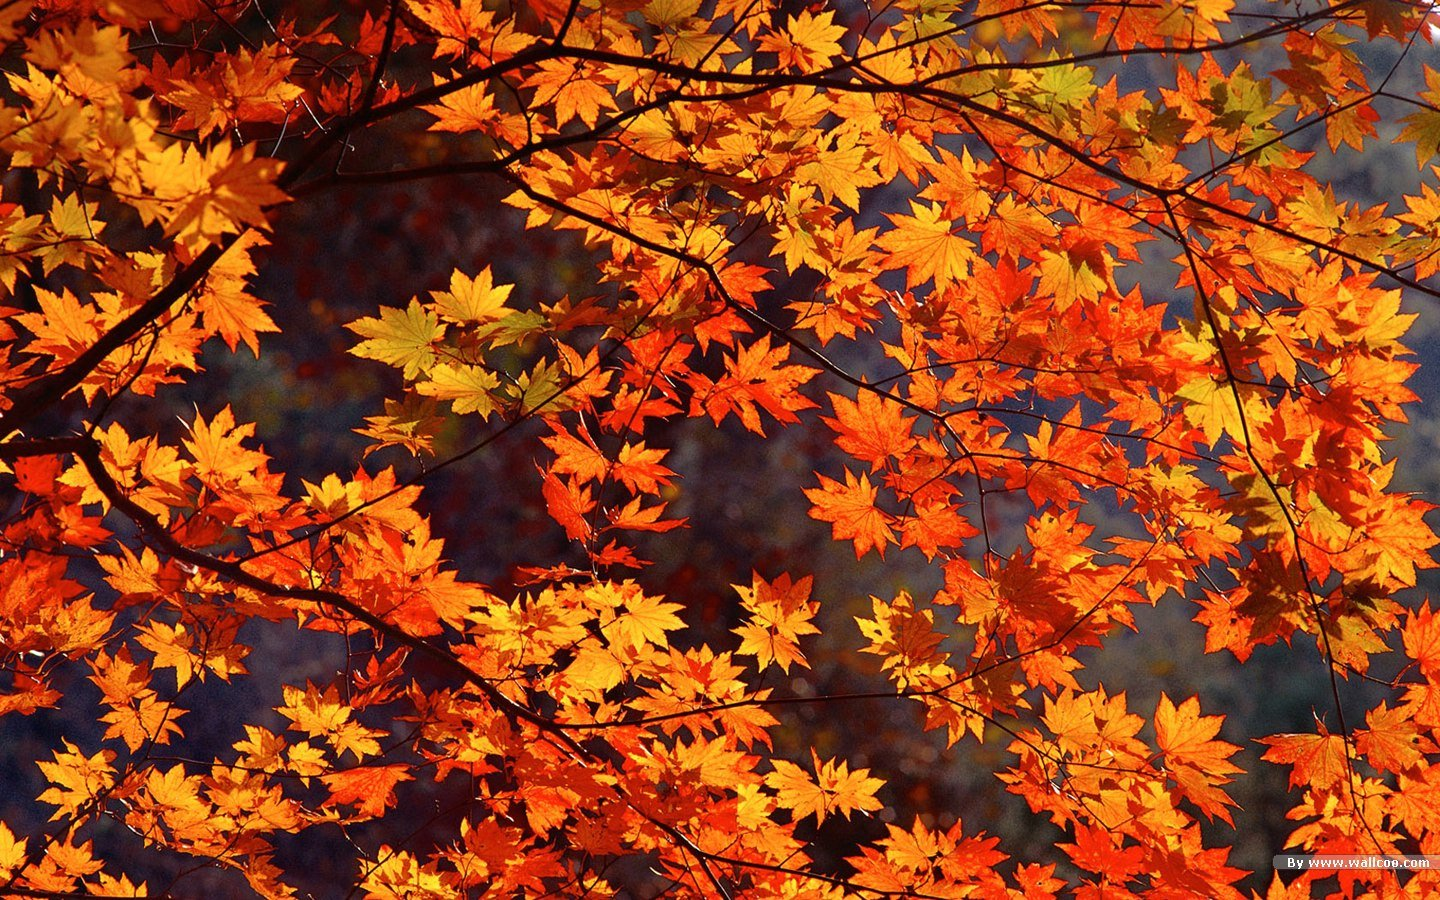 Autumn tints   Beautiful Fall leaves Widescreen wallpapers 1440900 NO 1440x900